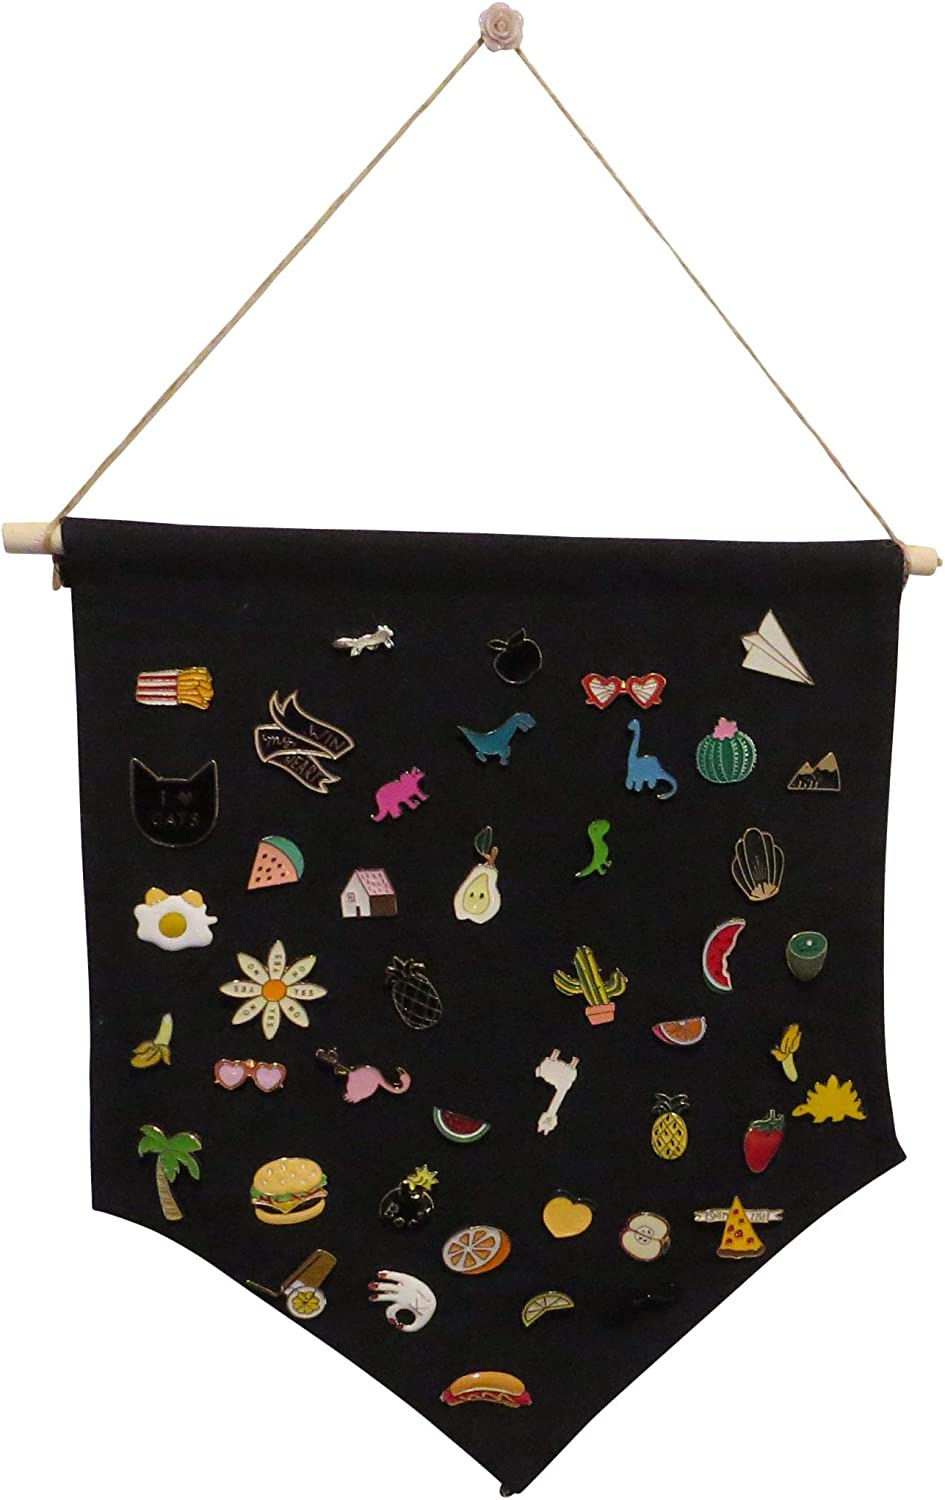 Enamel Pin Wall Display Banner - Display Pins, Buttons and Lapel Collections.